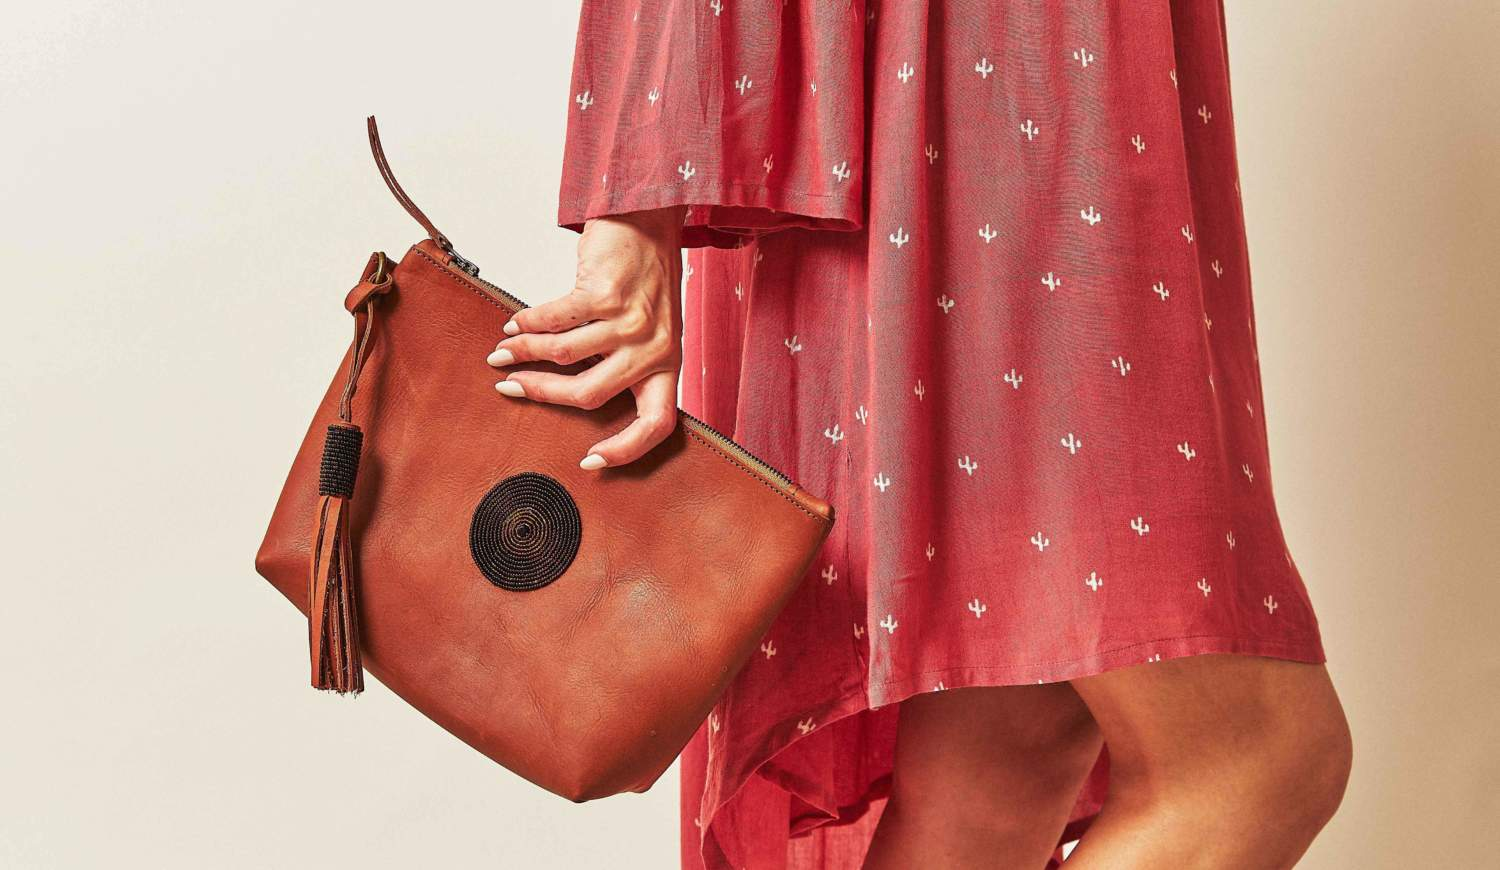 A women in a red dress with a small cactus print holds a leather clutch in her right hand